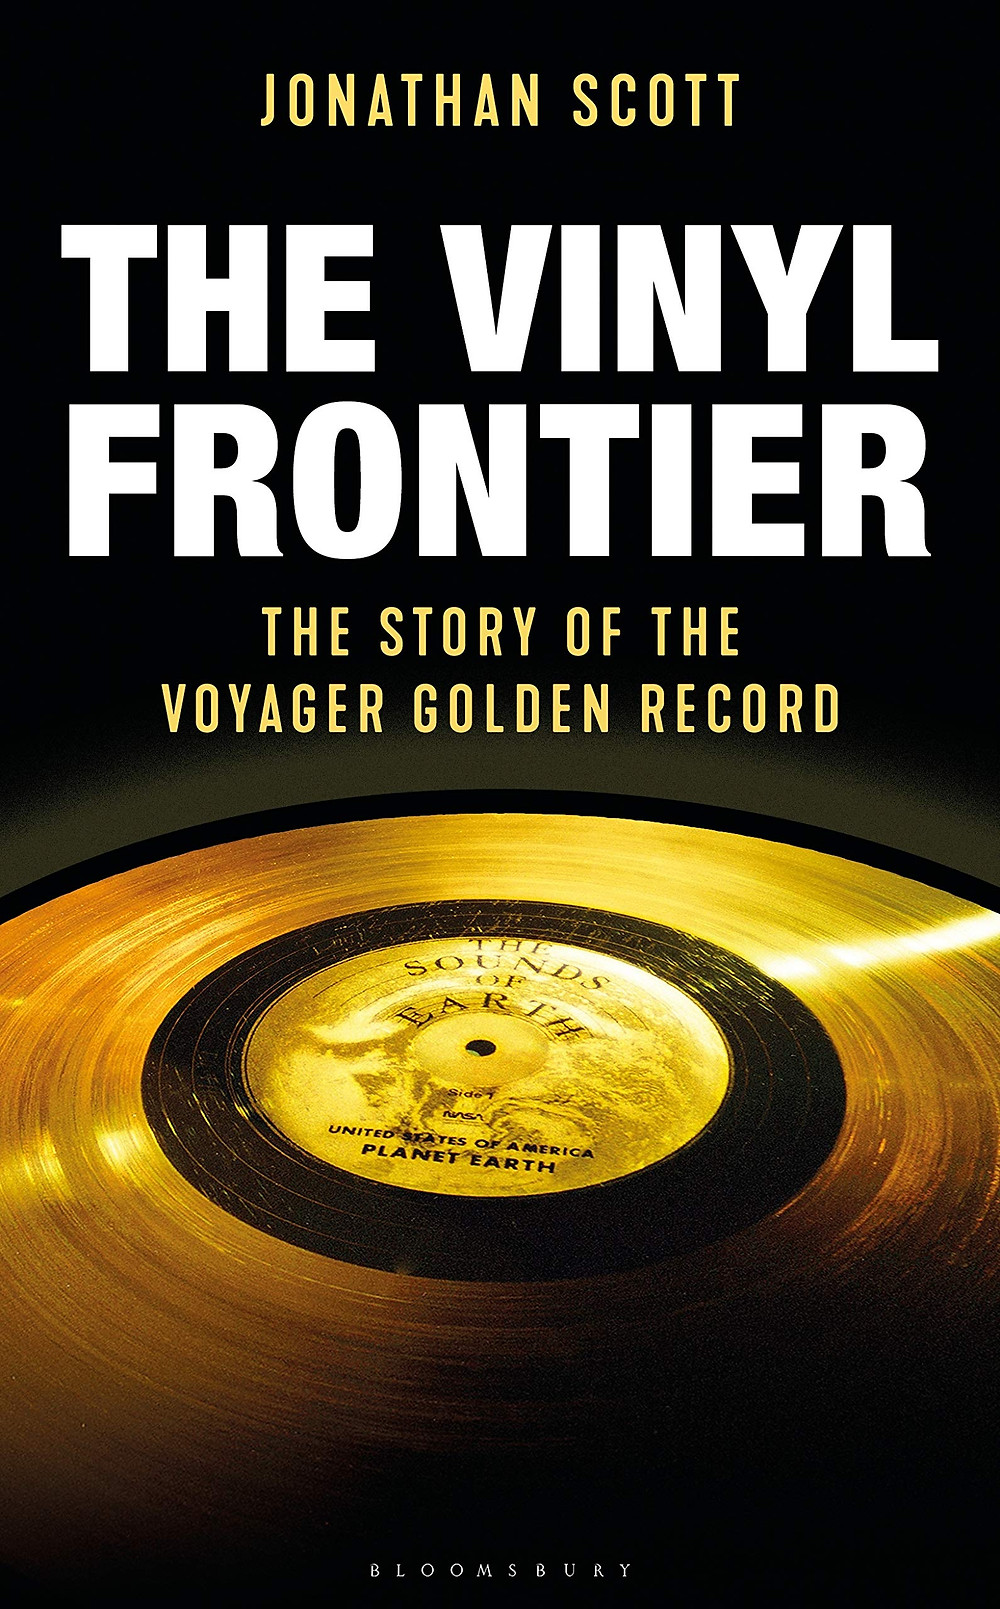 The Vinyl Frontier: The Story of the Voyager Golden Record by Jonathan Scott